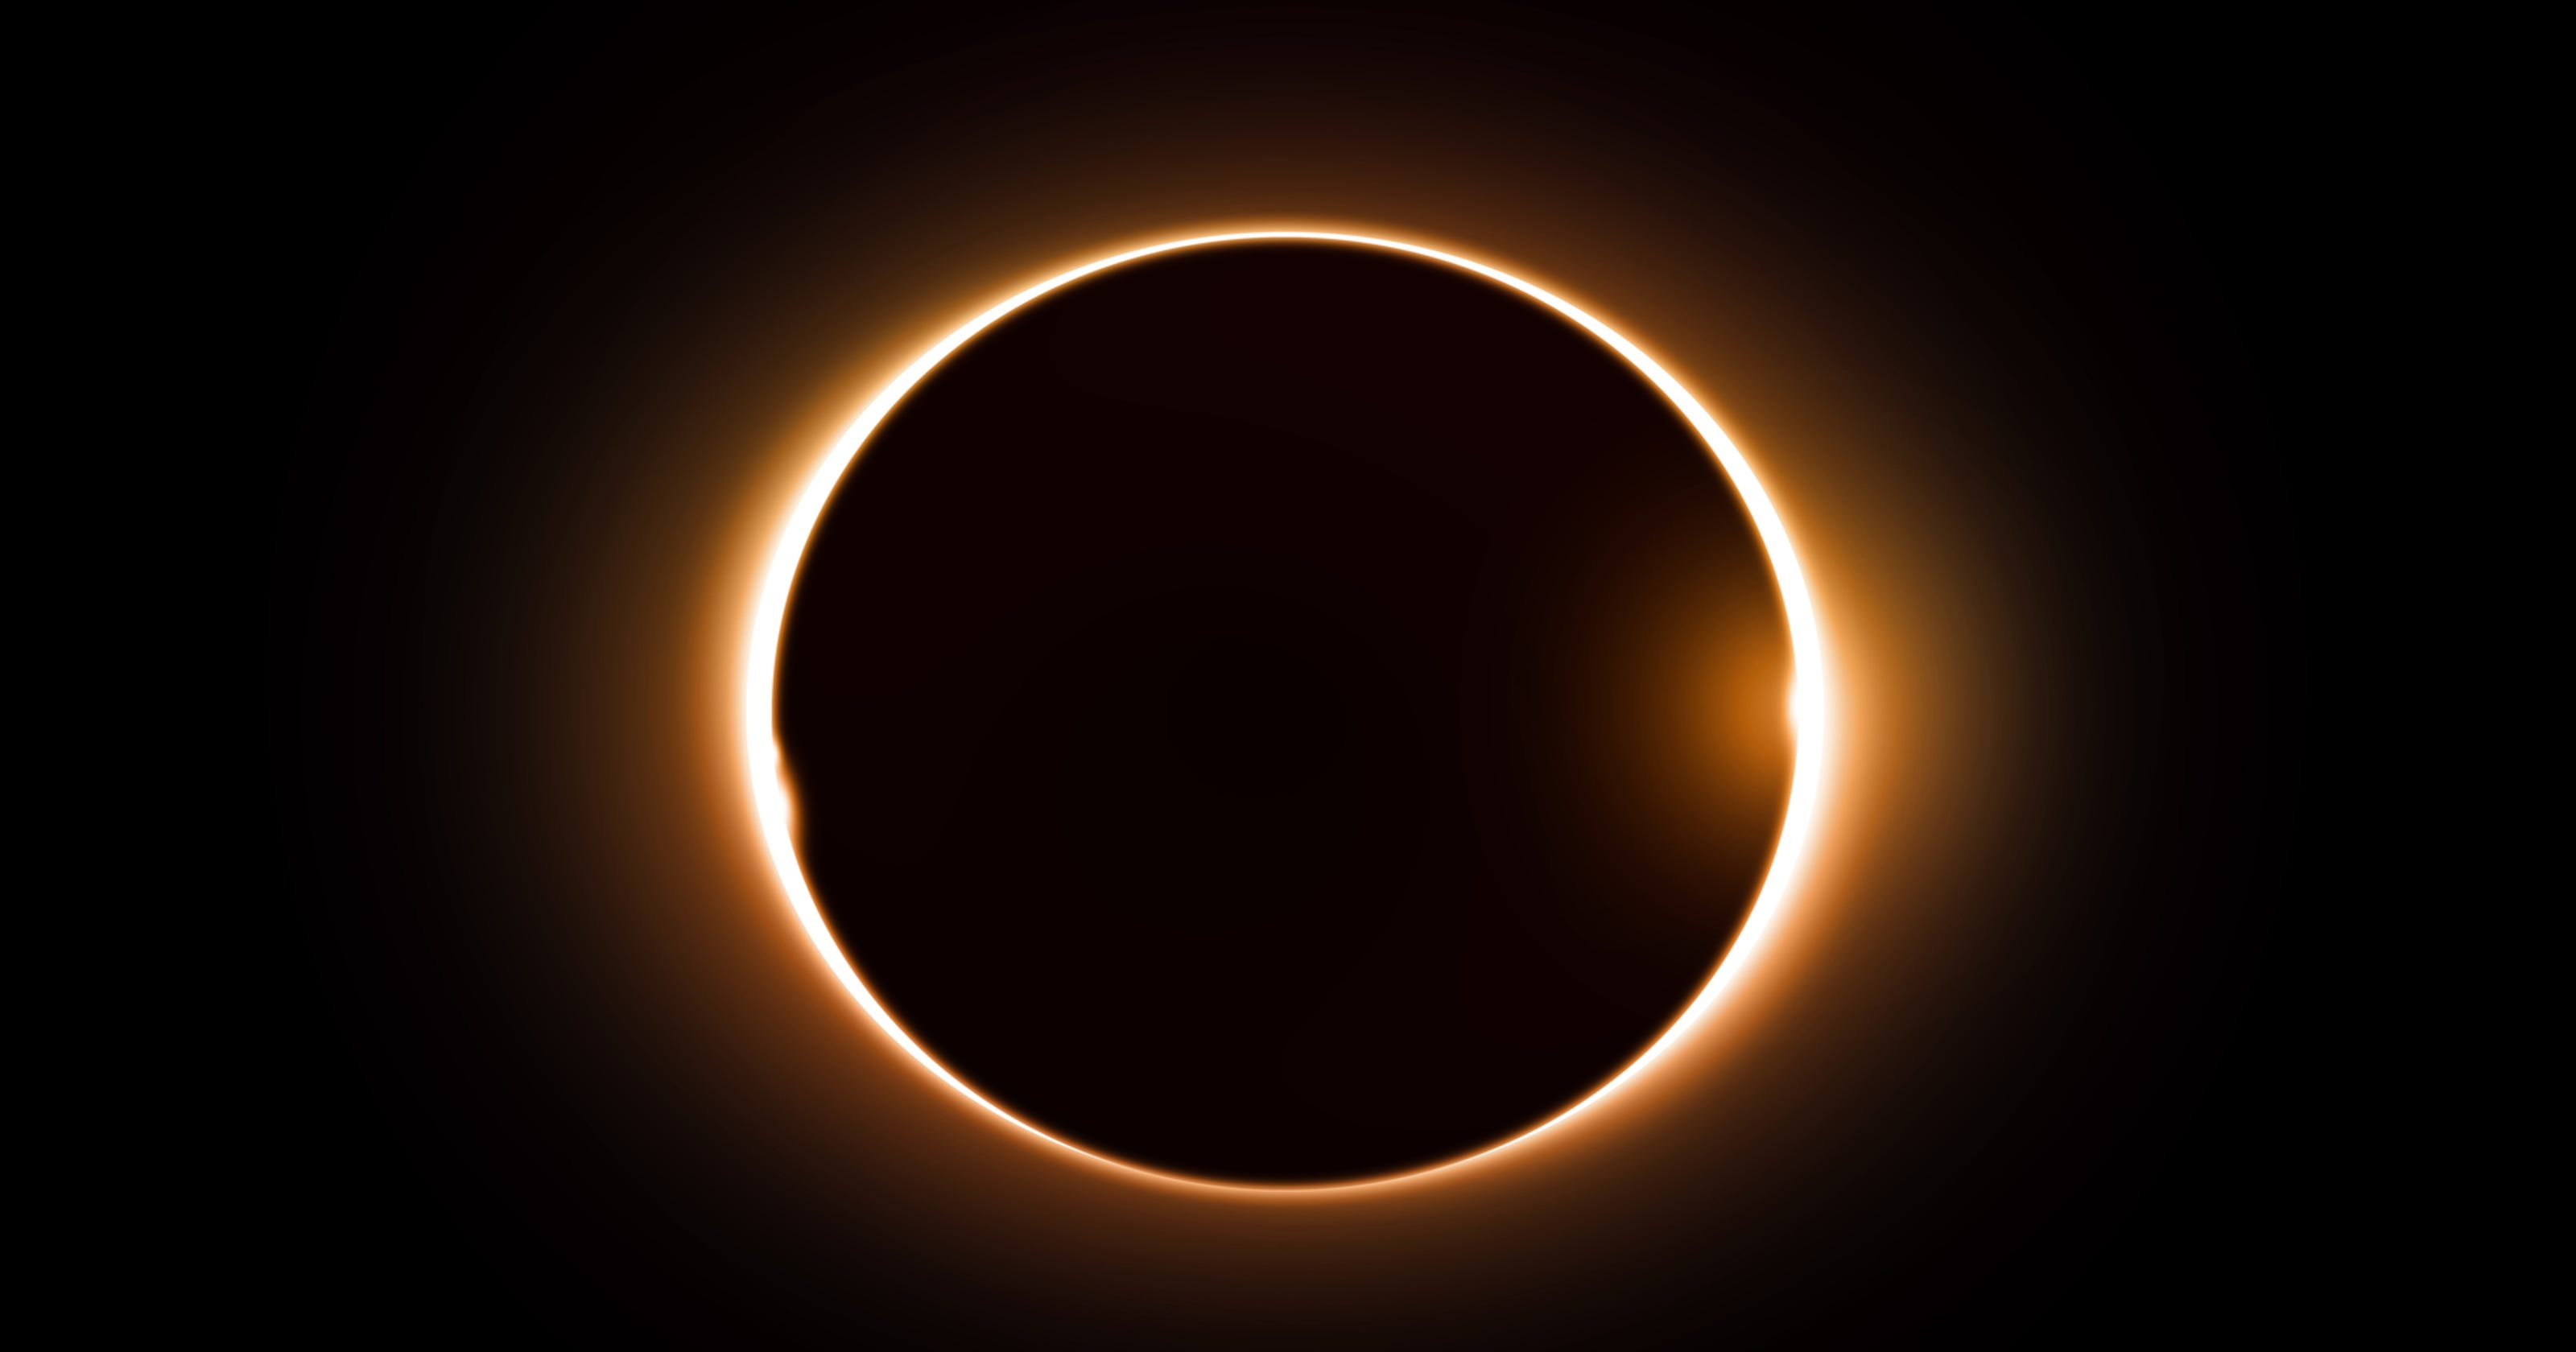 Solar eclipse: What time is the eclipse where I live?